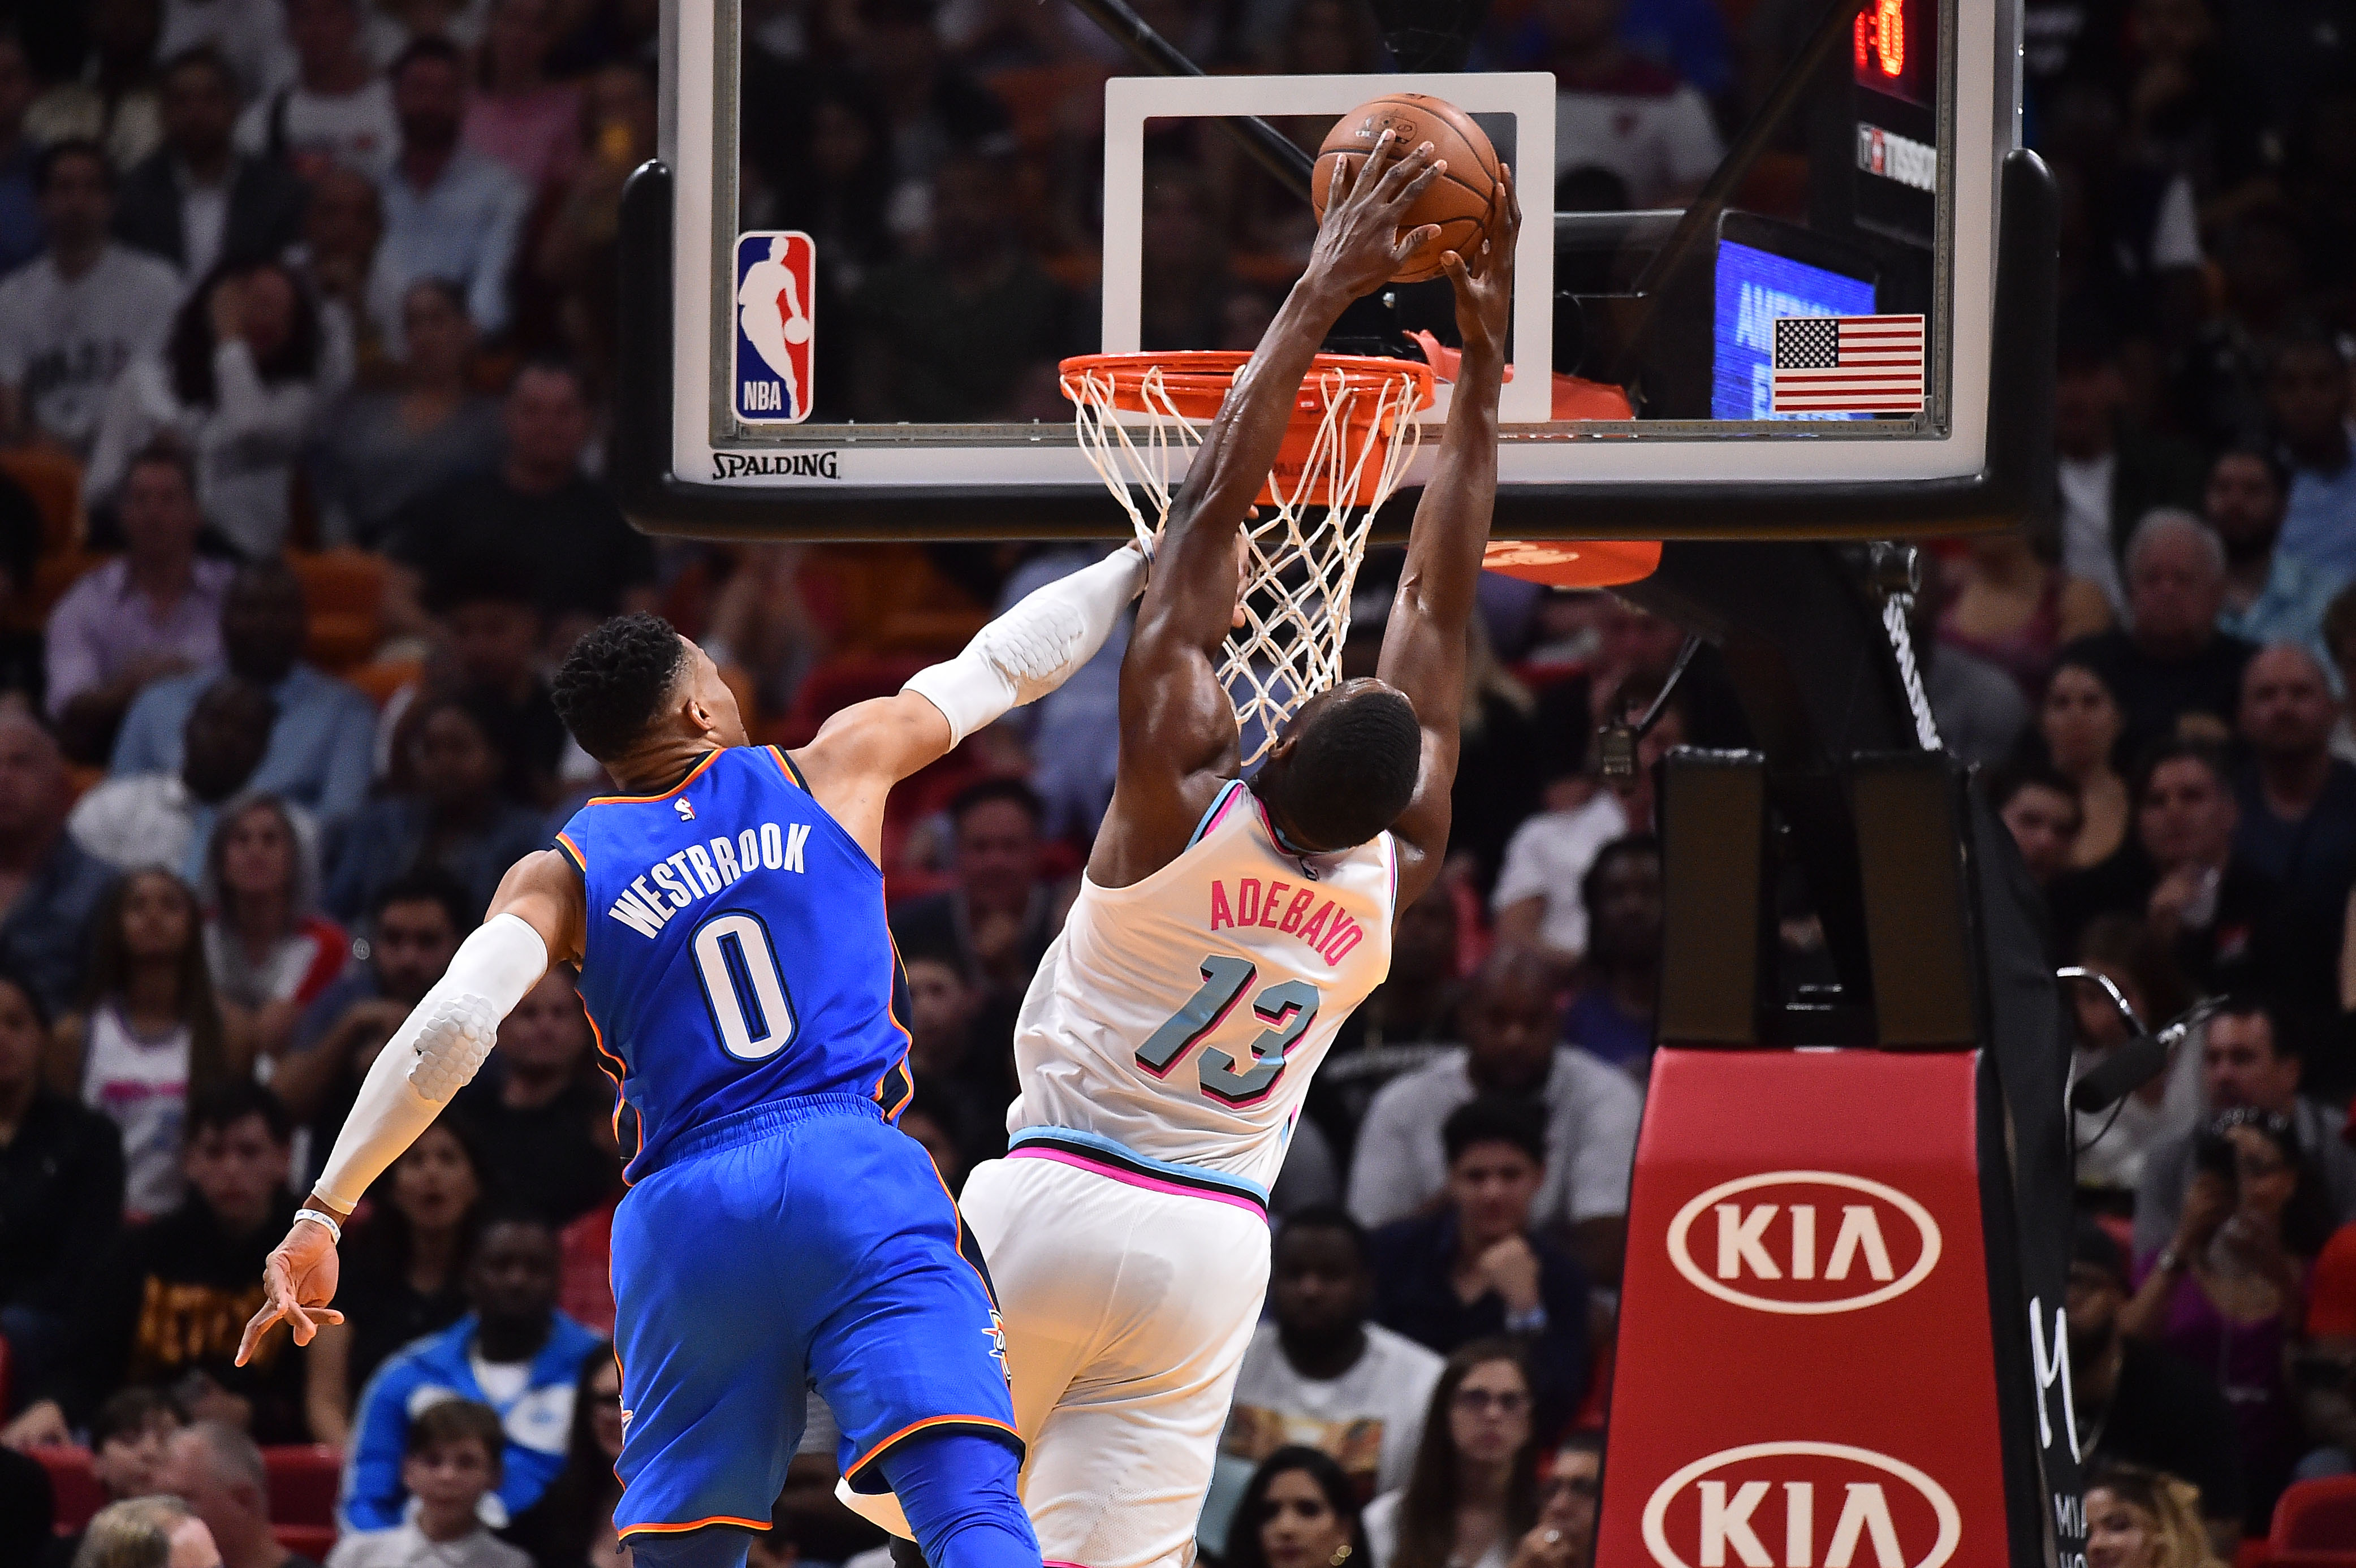 NBA: Oklahoma City Thunder at Miami Heat